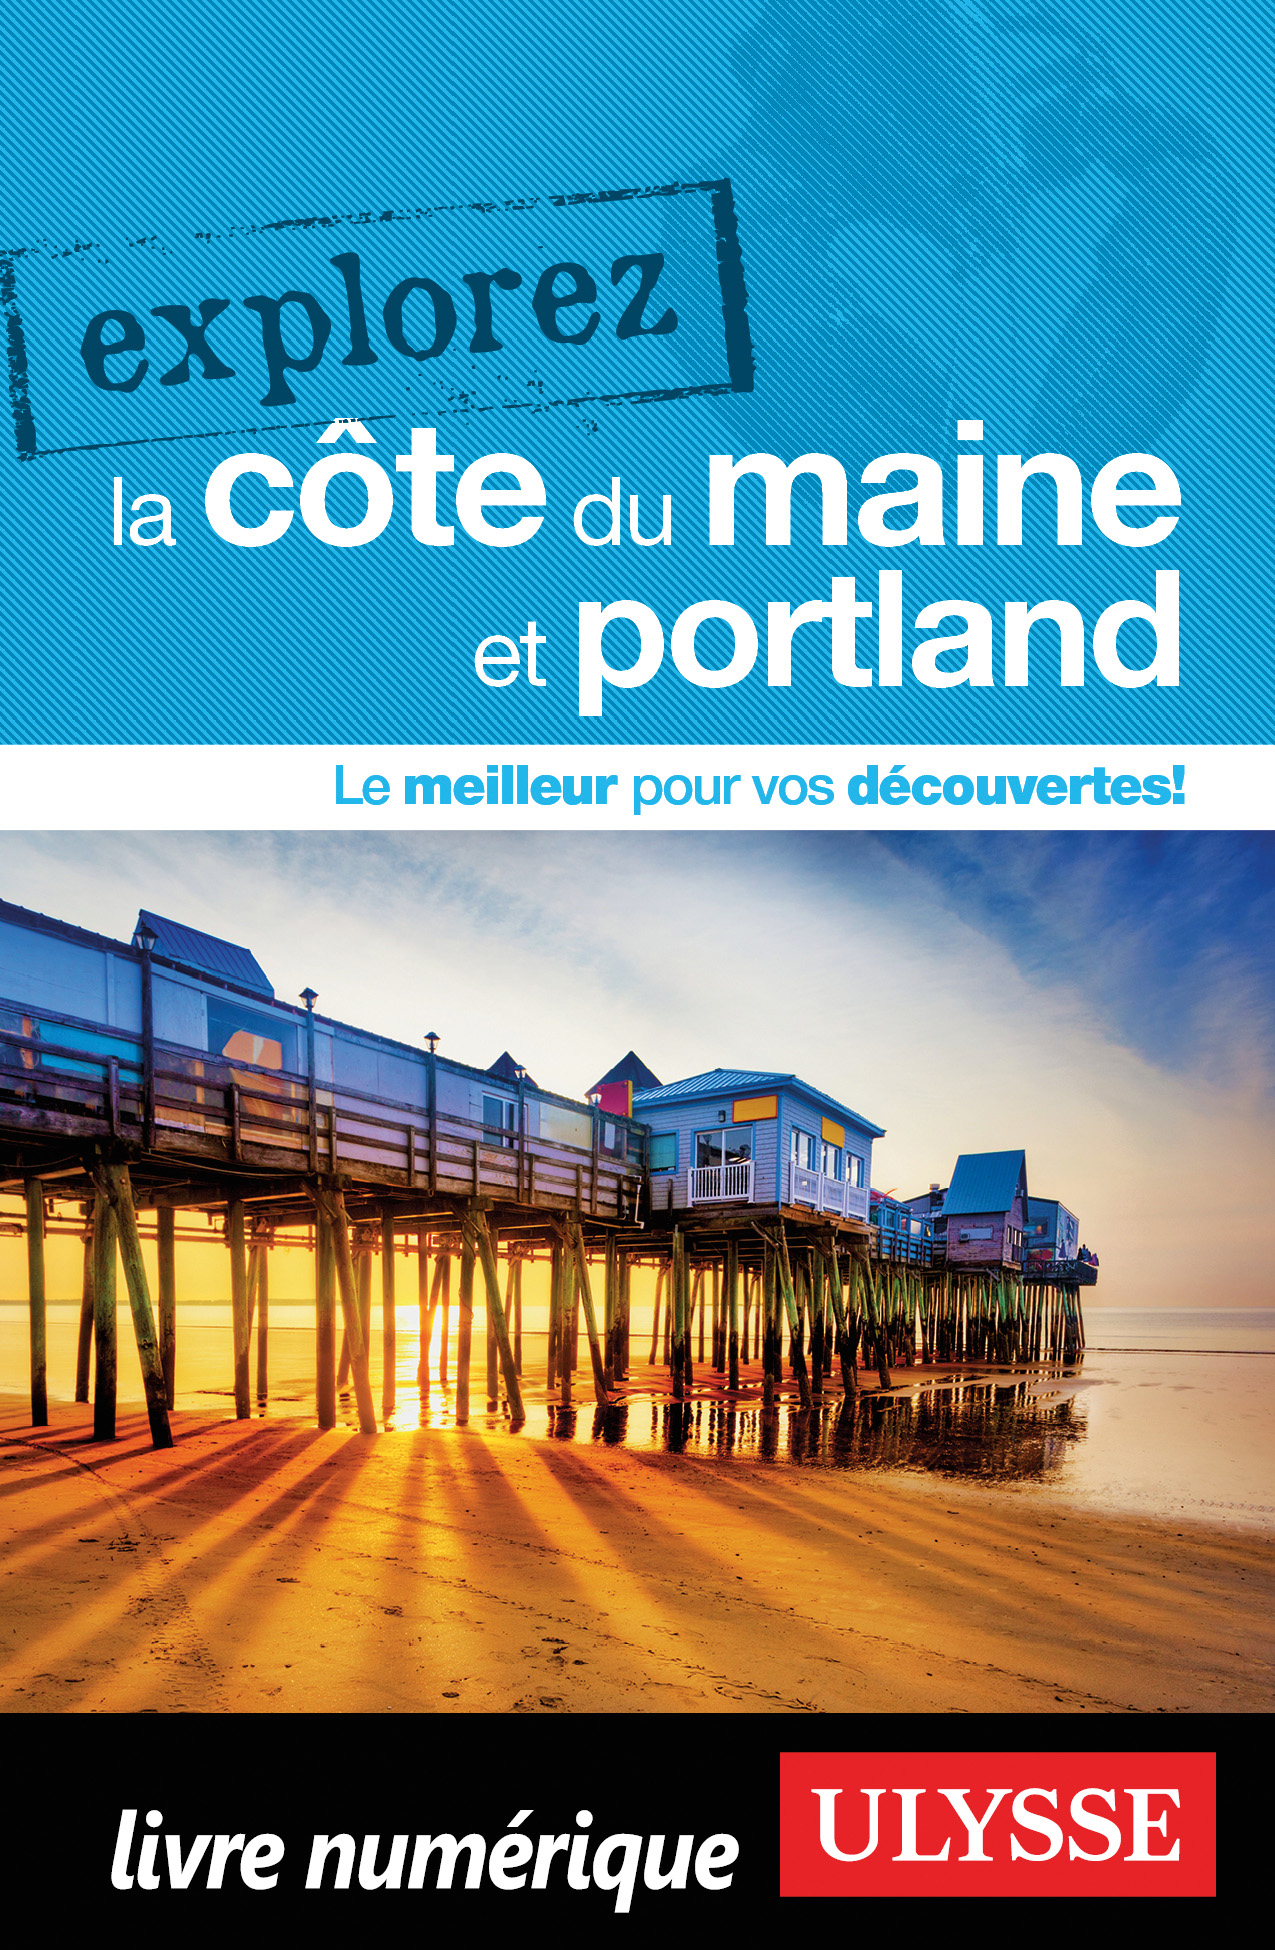 Explorez la côte du Maine et Portland